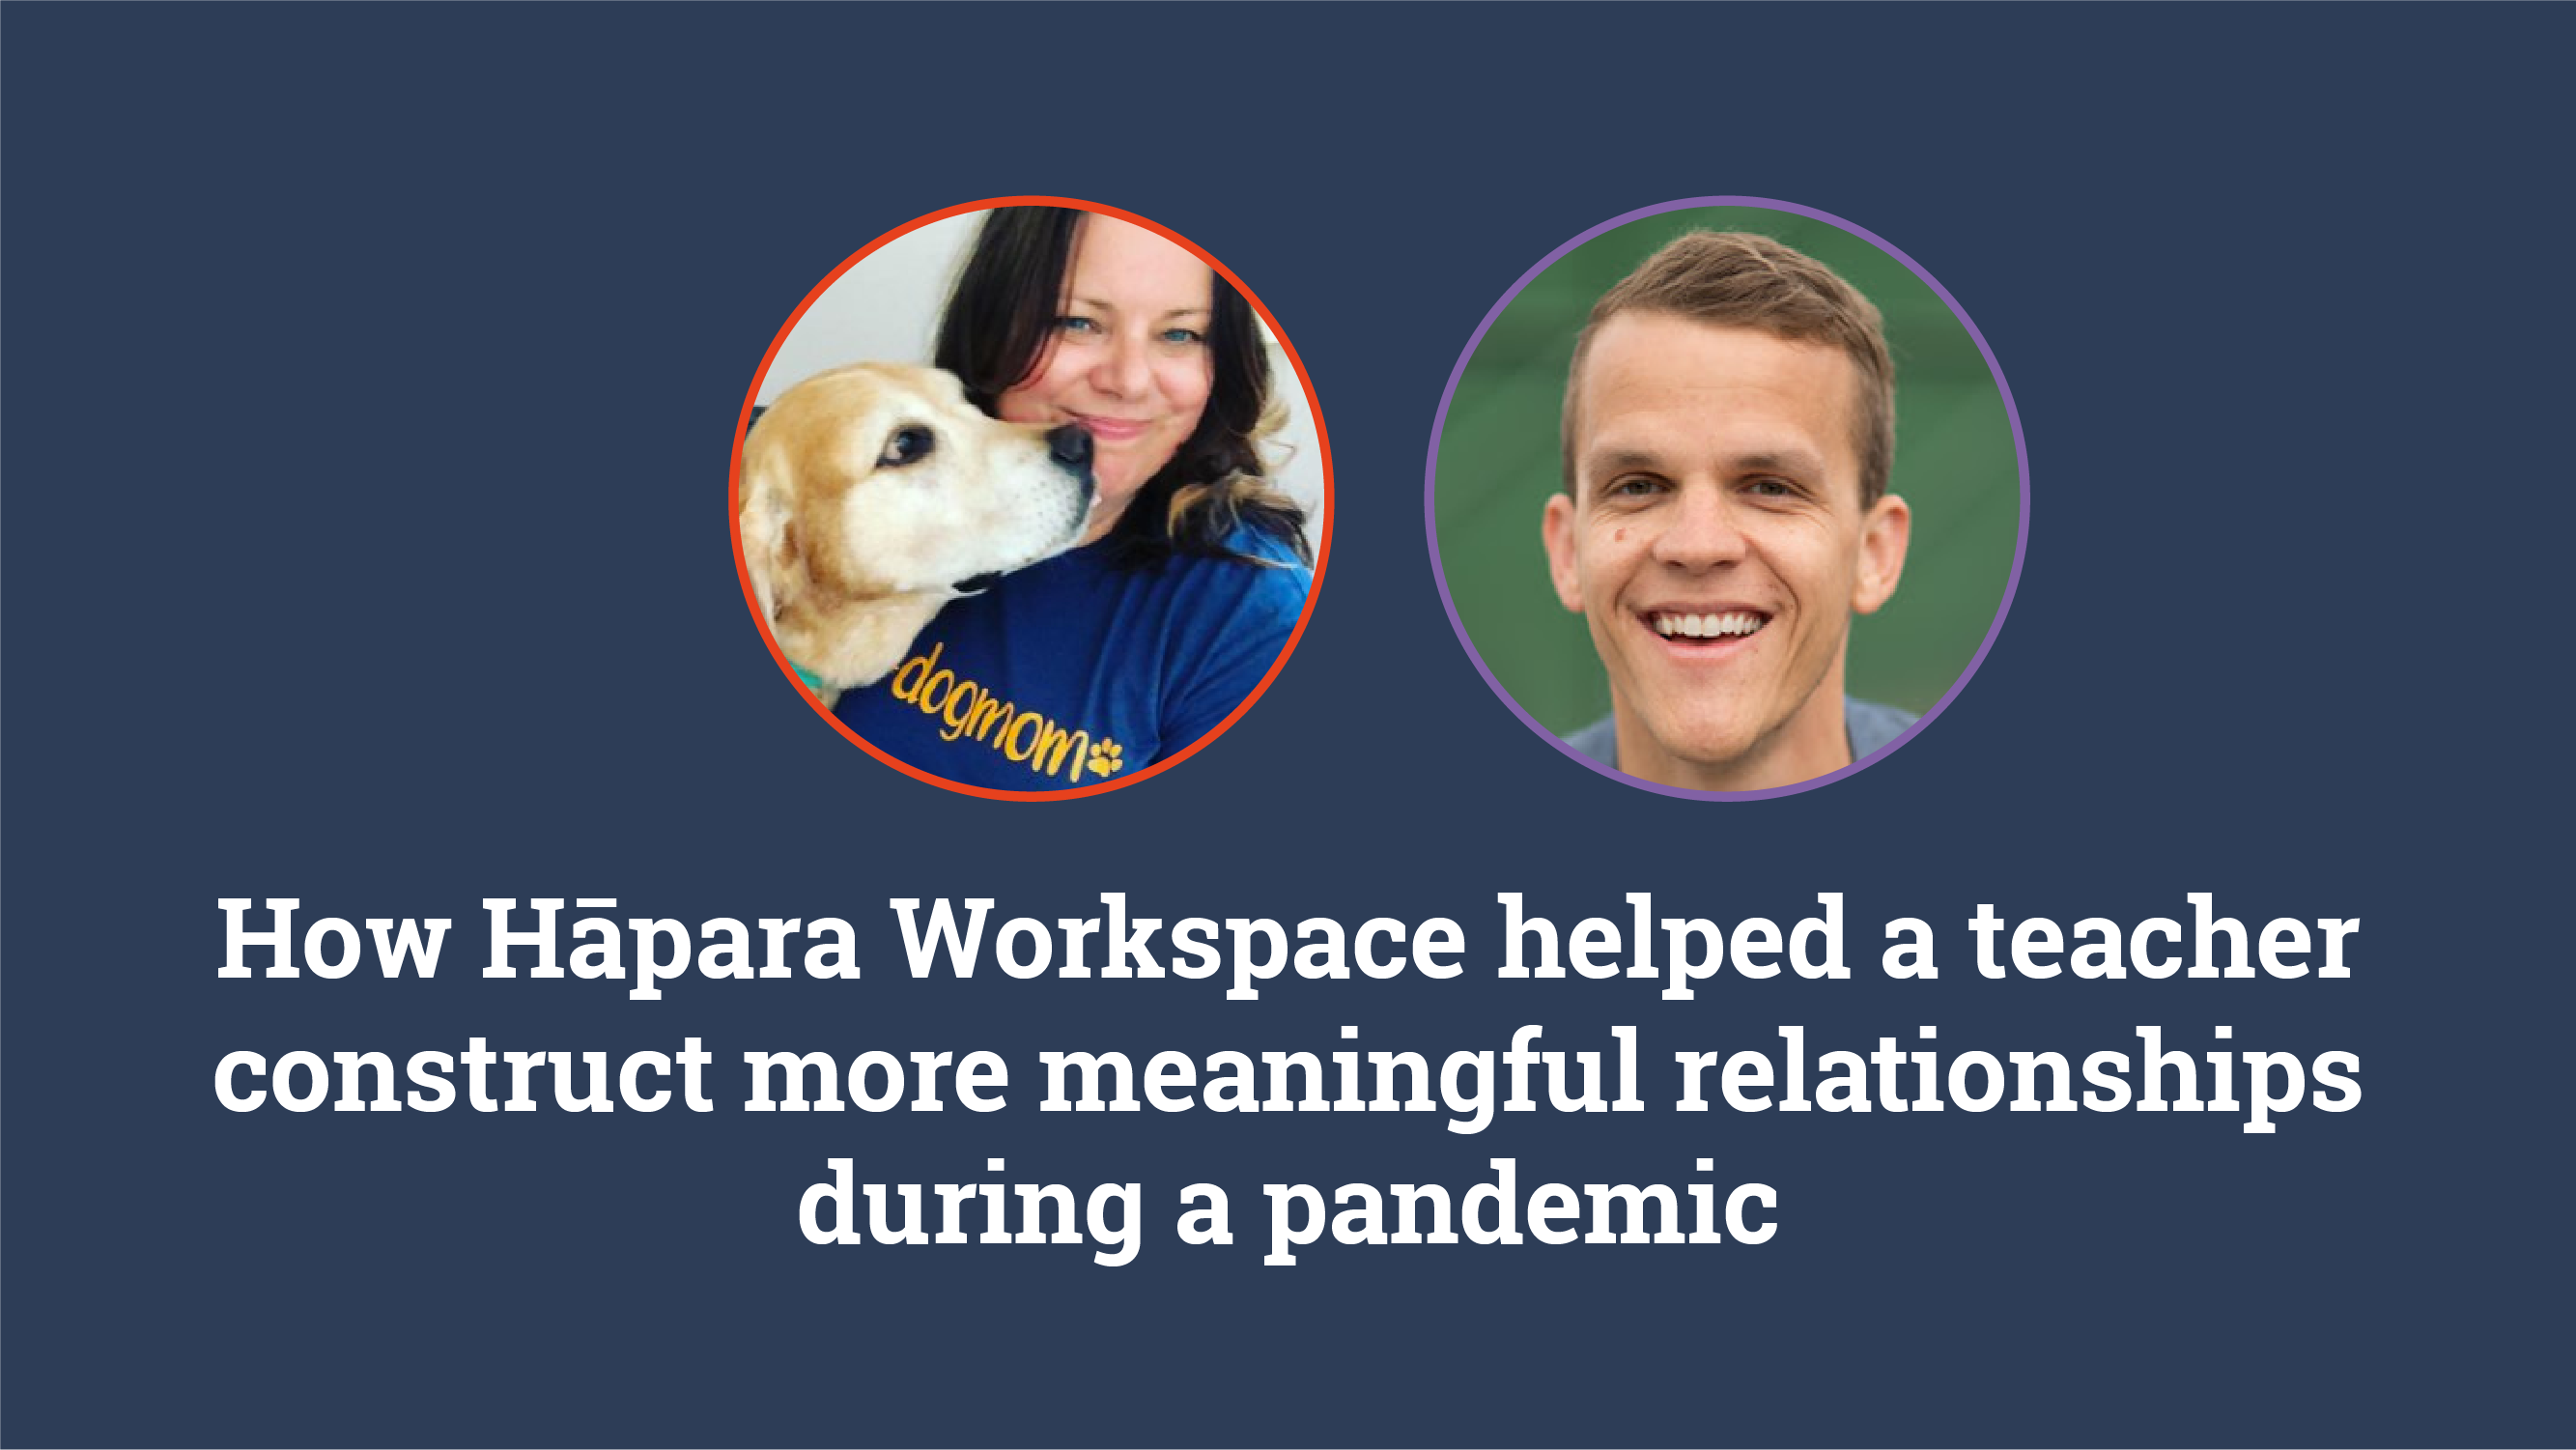 How Hāpara Workspace helped a teacher construct more meaningful relationships during a pandemic